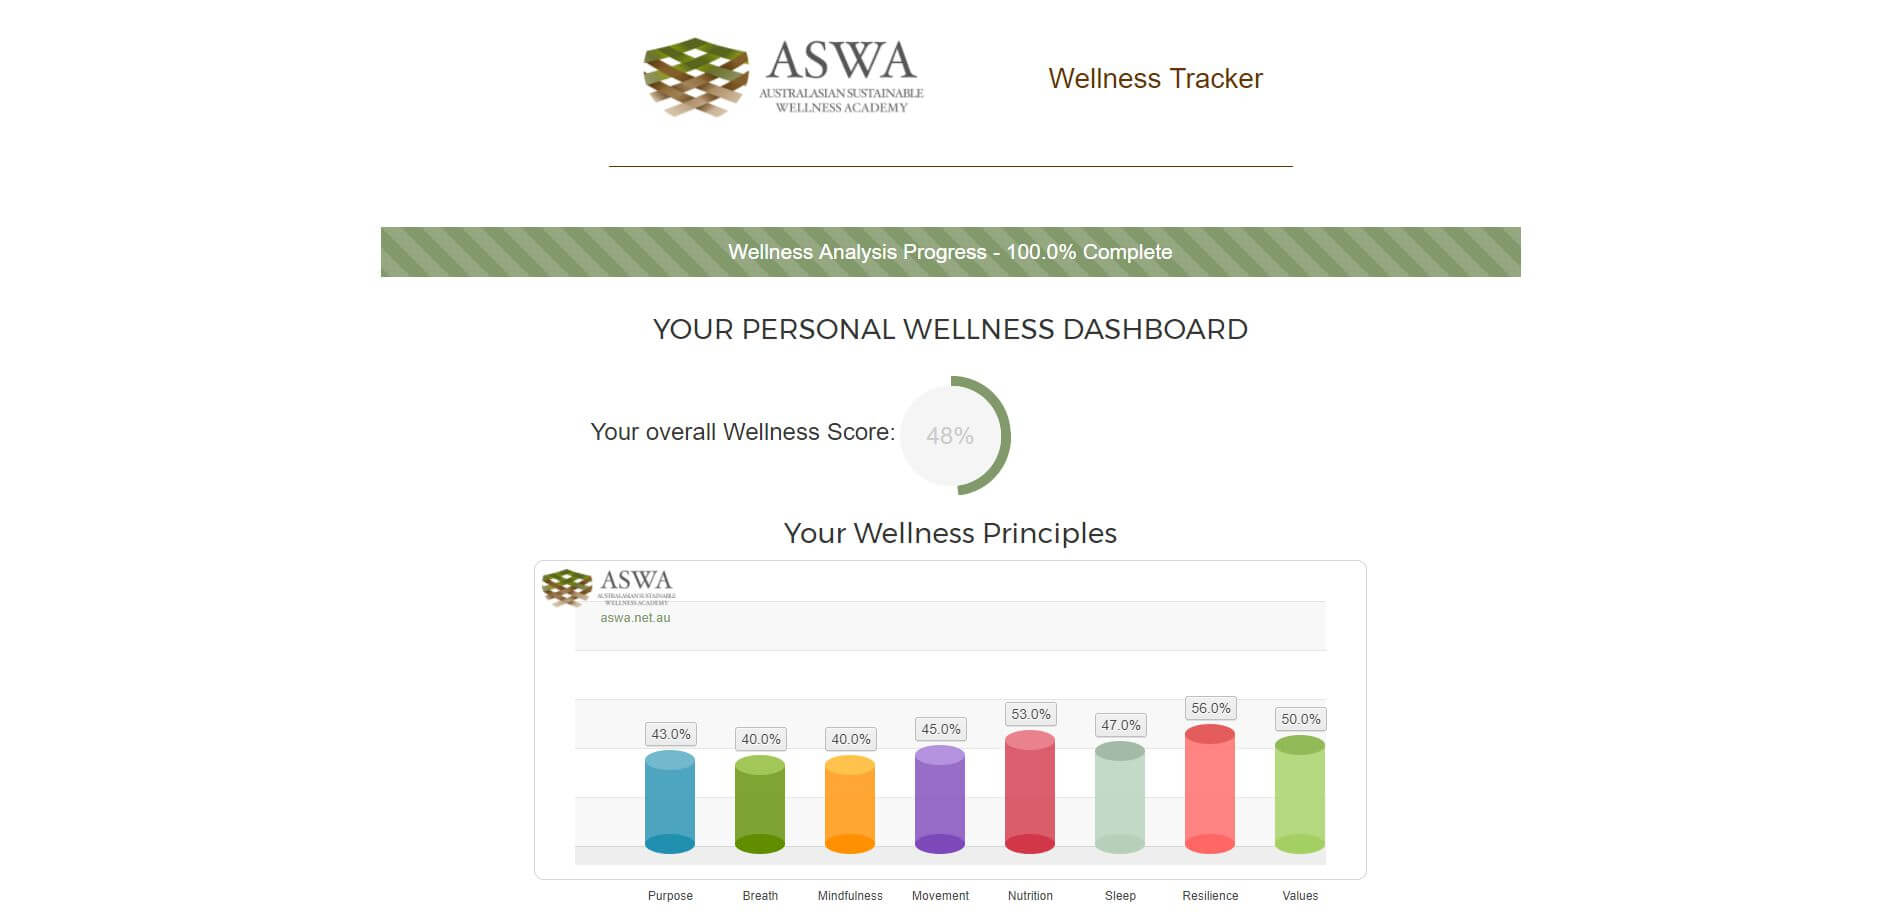 How to review, measure and track your wellness progress